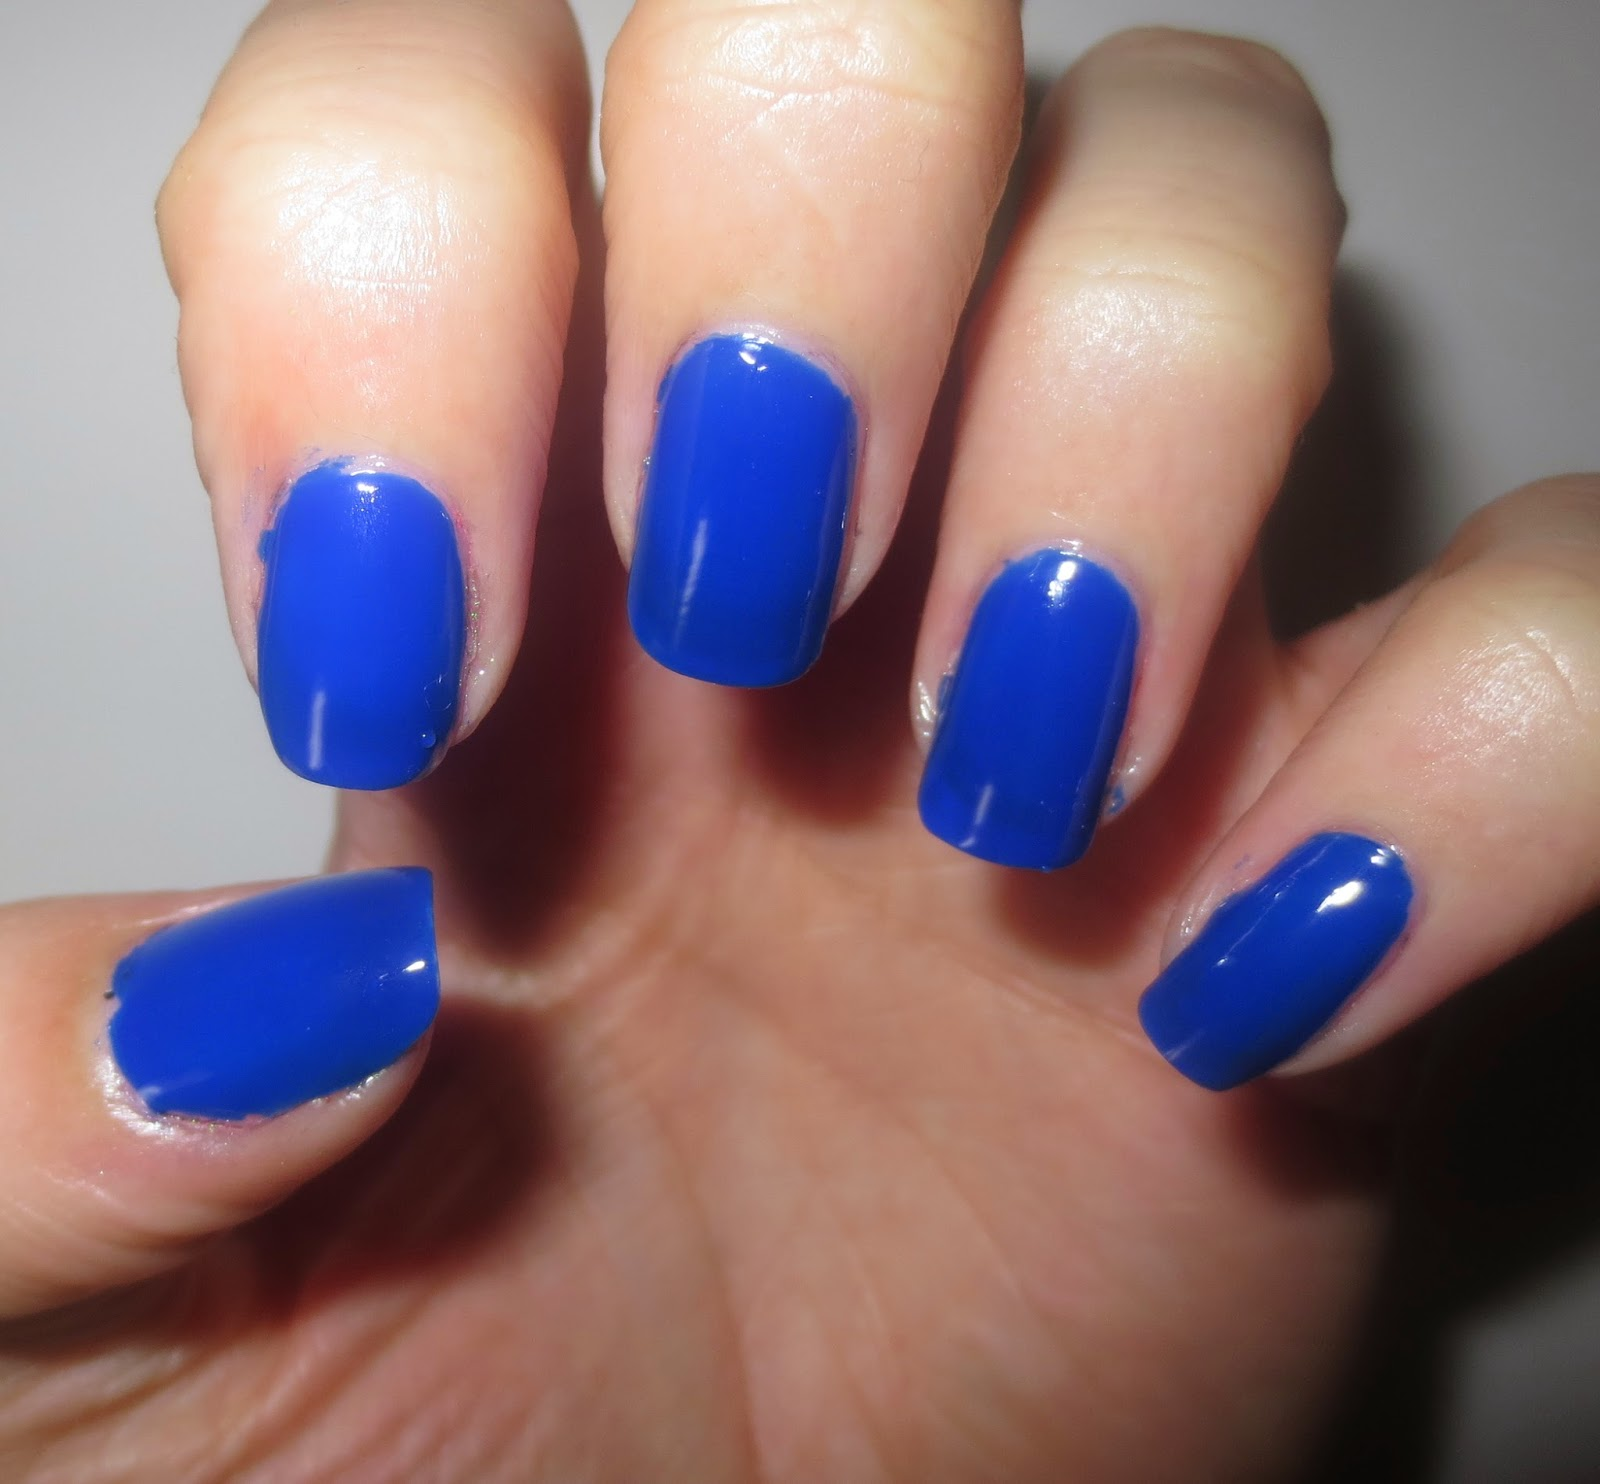 Lancôme Vernis in Love Brilliance Gloss Polish in 557 Nuit D'Azur swatch